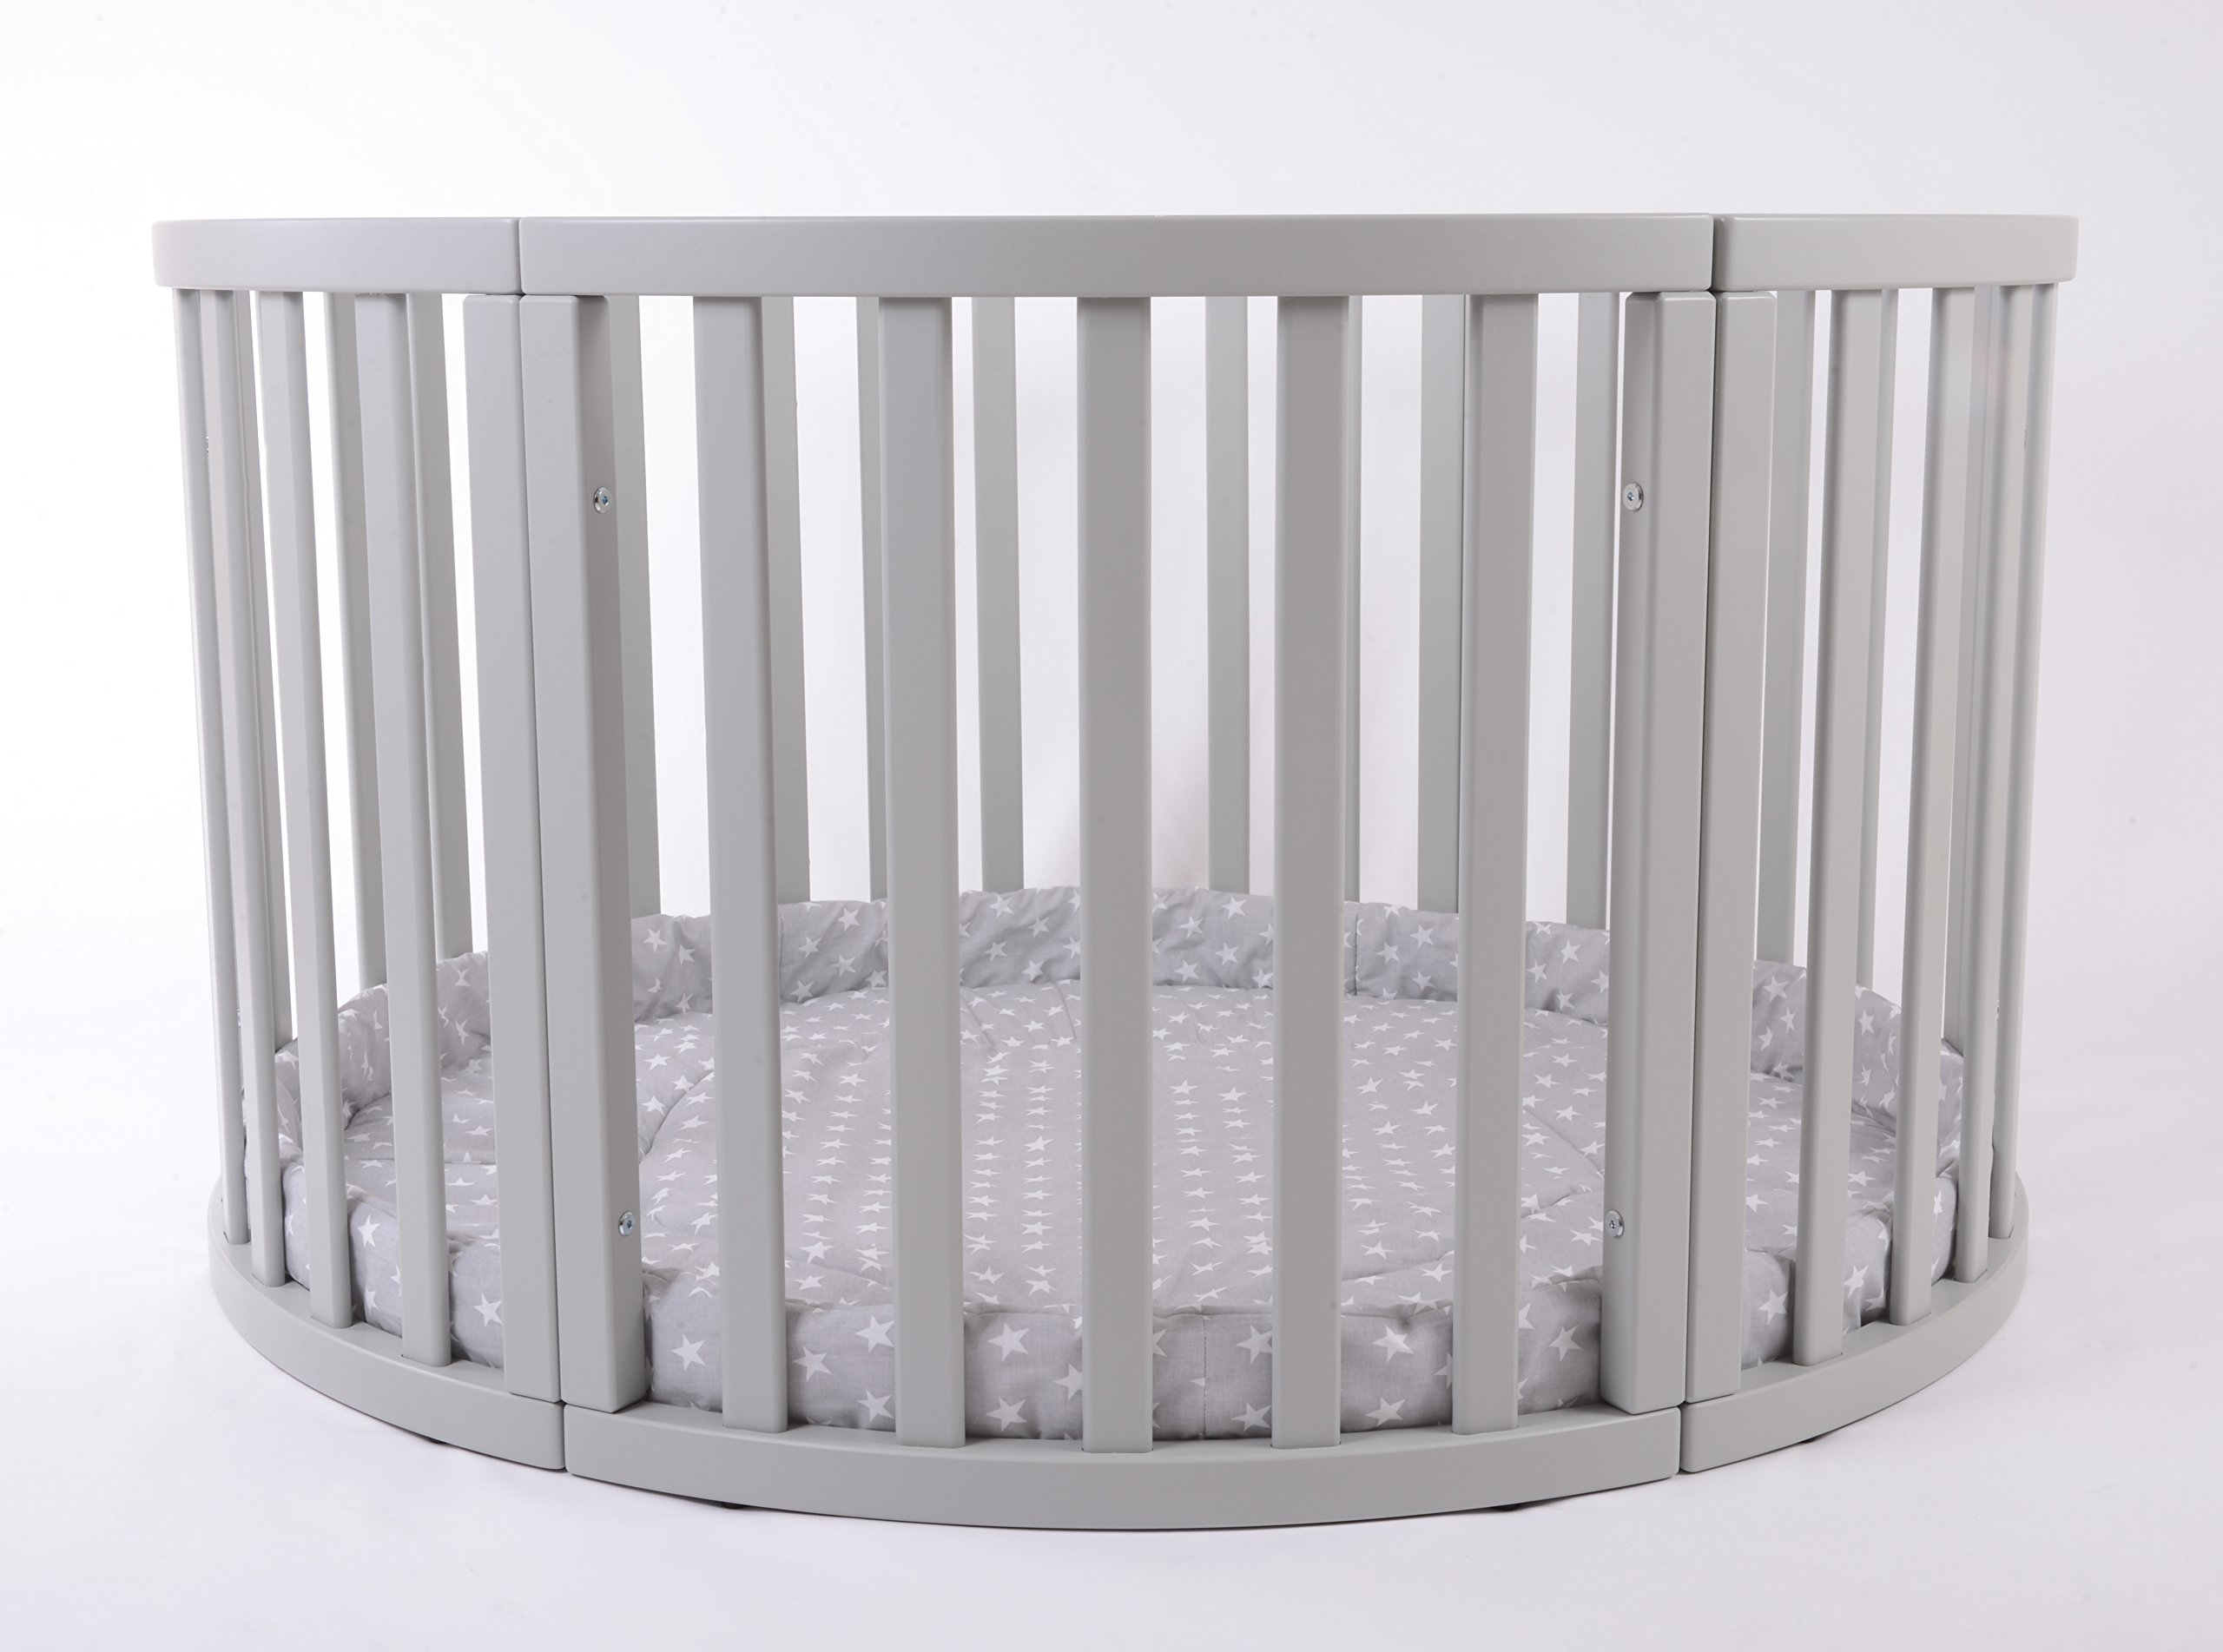 MJmark Round PLAYPEN APOLLO QUATTRO VERY LARGE Wooden play pen with play-mat SALE SALE (Grey Stars) MJmark Height 70 cm approx; Ø 120cm including Playmat made from solid hard wood (Birch) 3